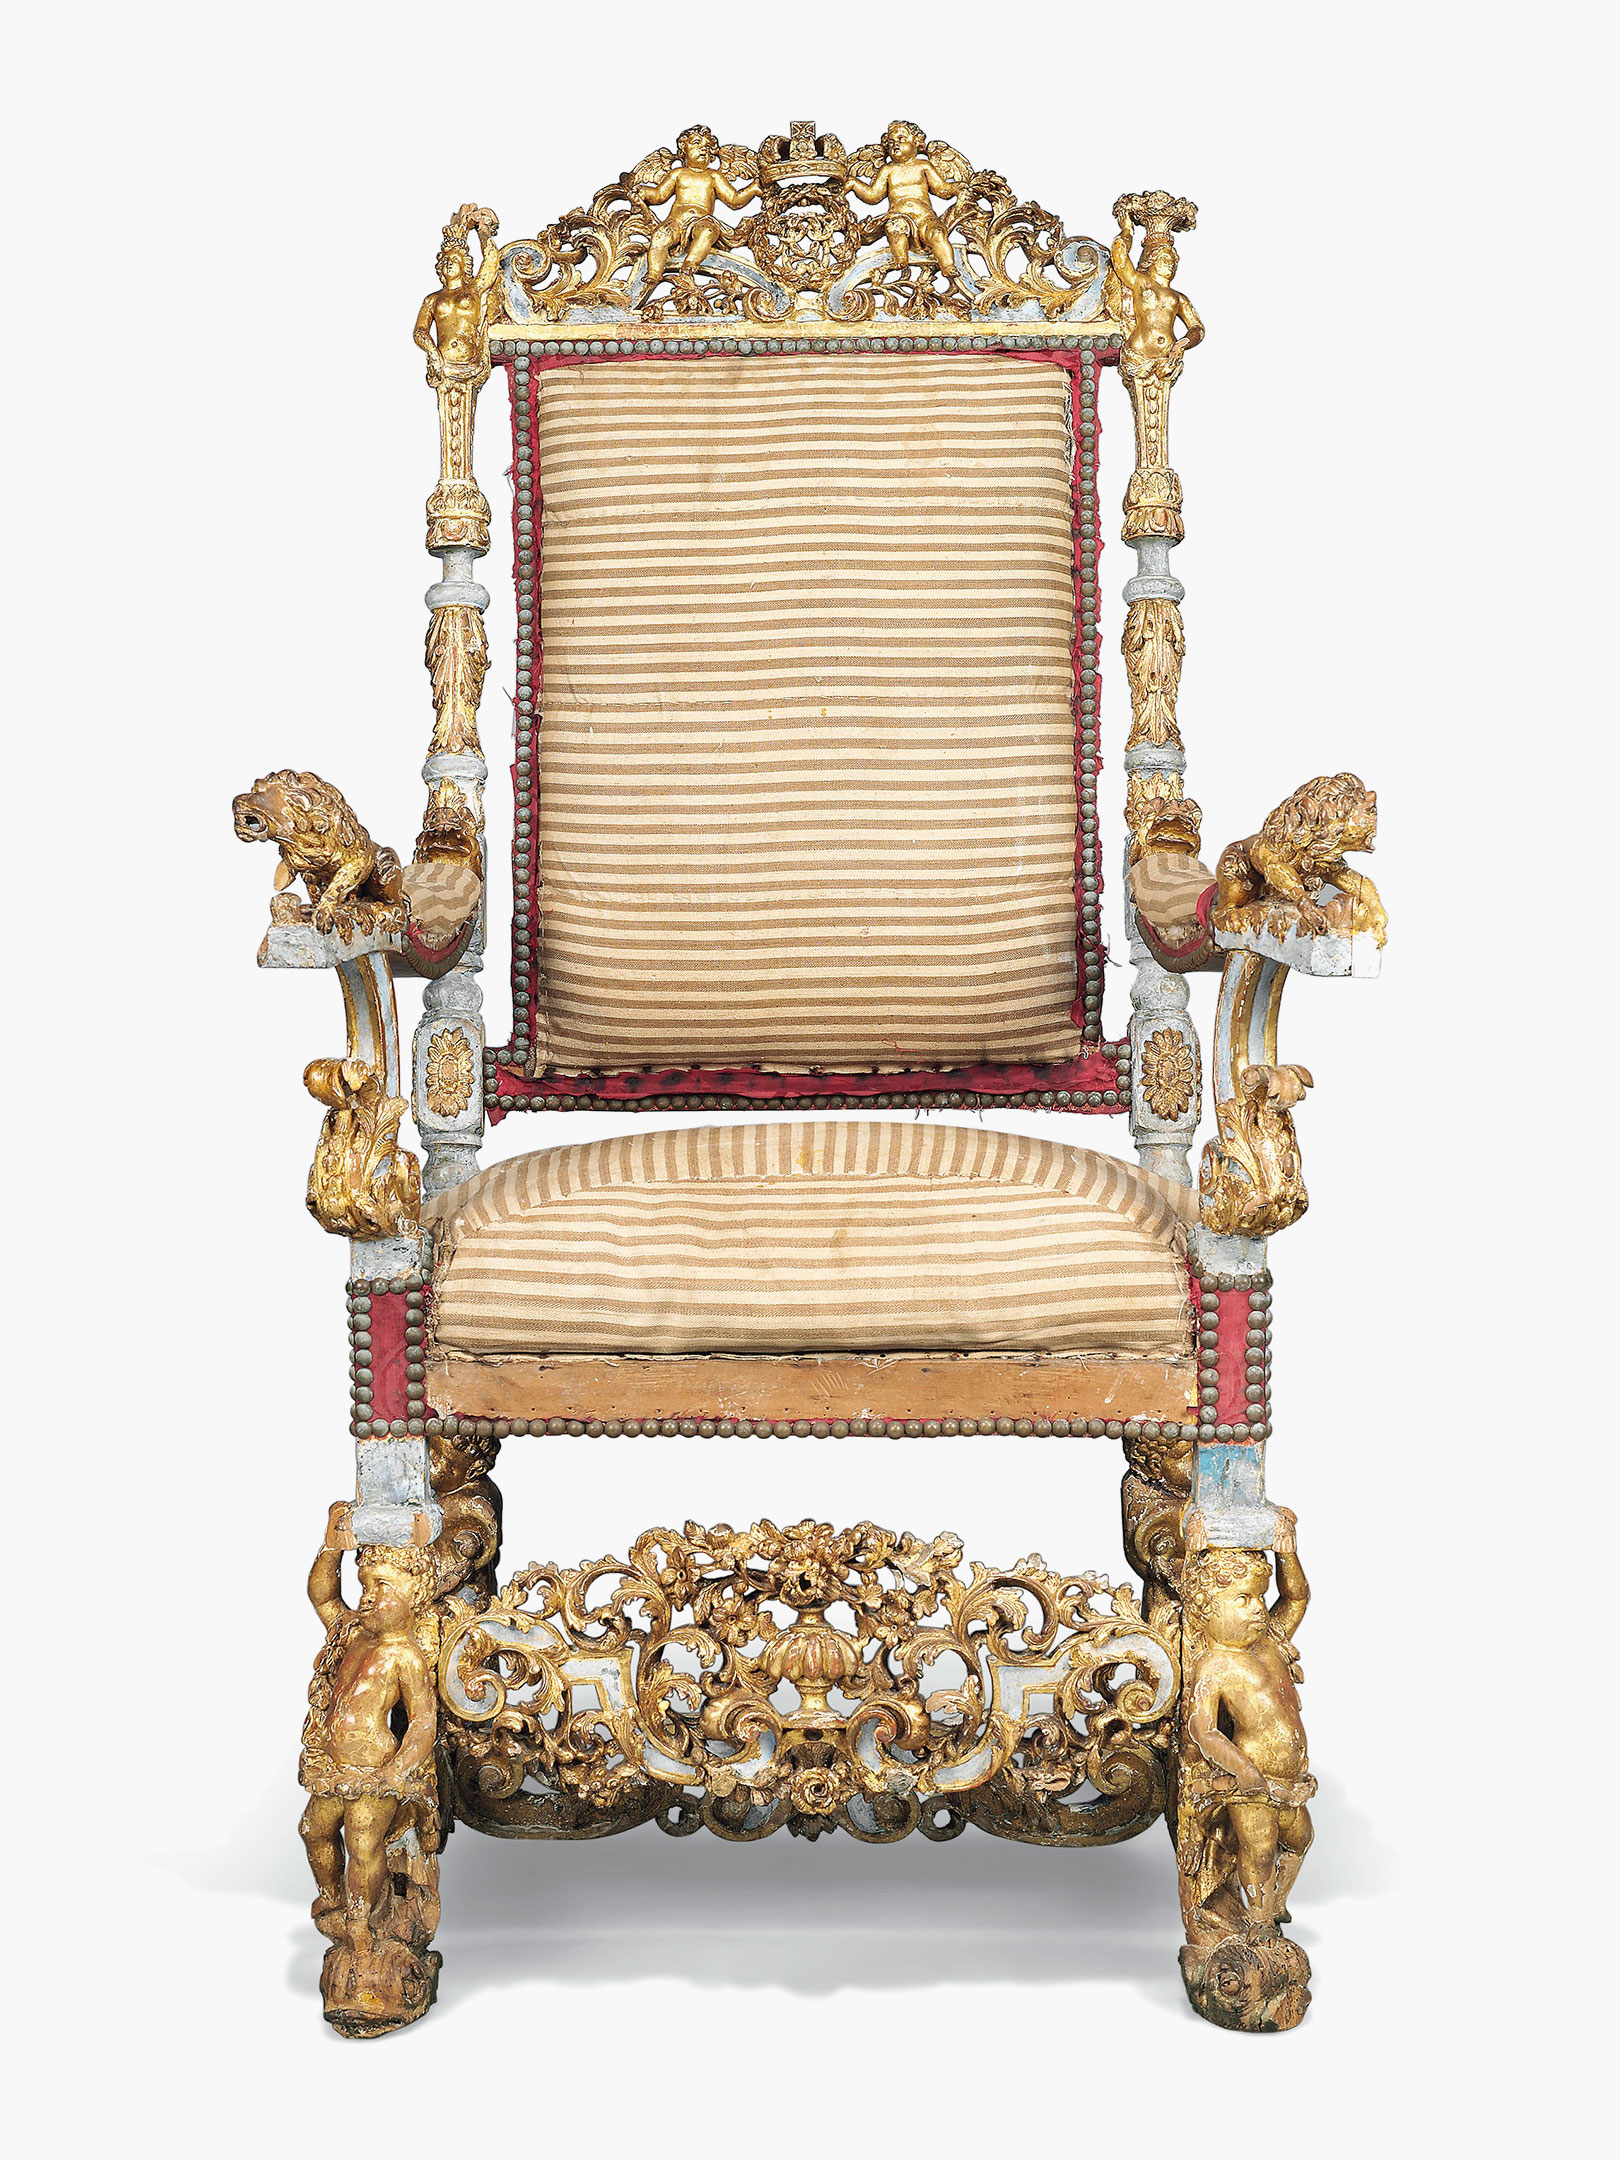 a william u0026 mary parcelgilt and bluepainted chair of state attributed to thomas roberts london the upholstery original 53 in cm high